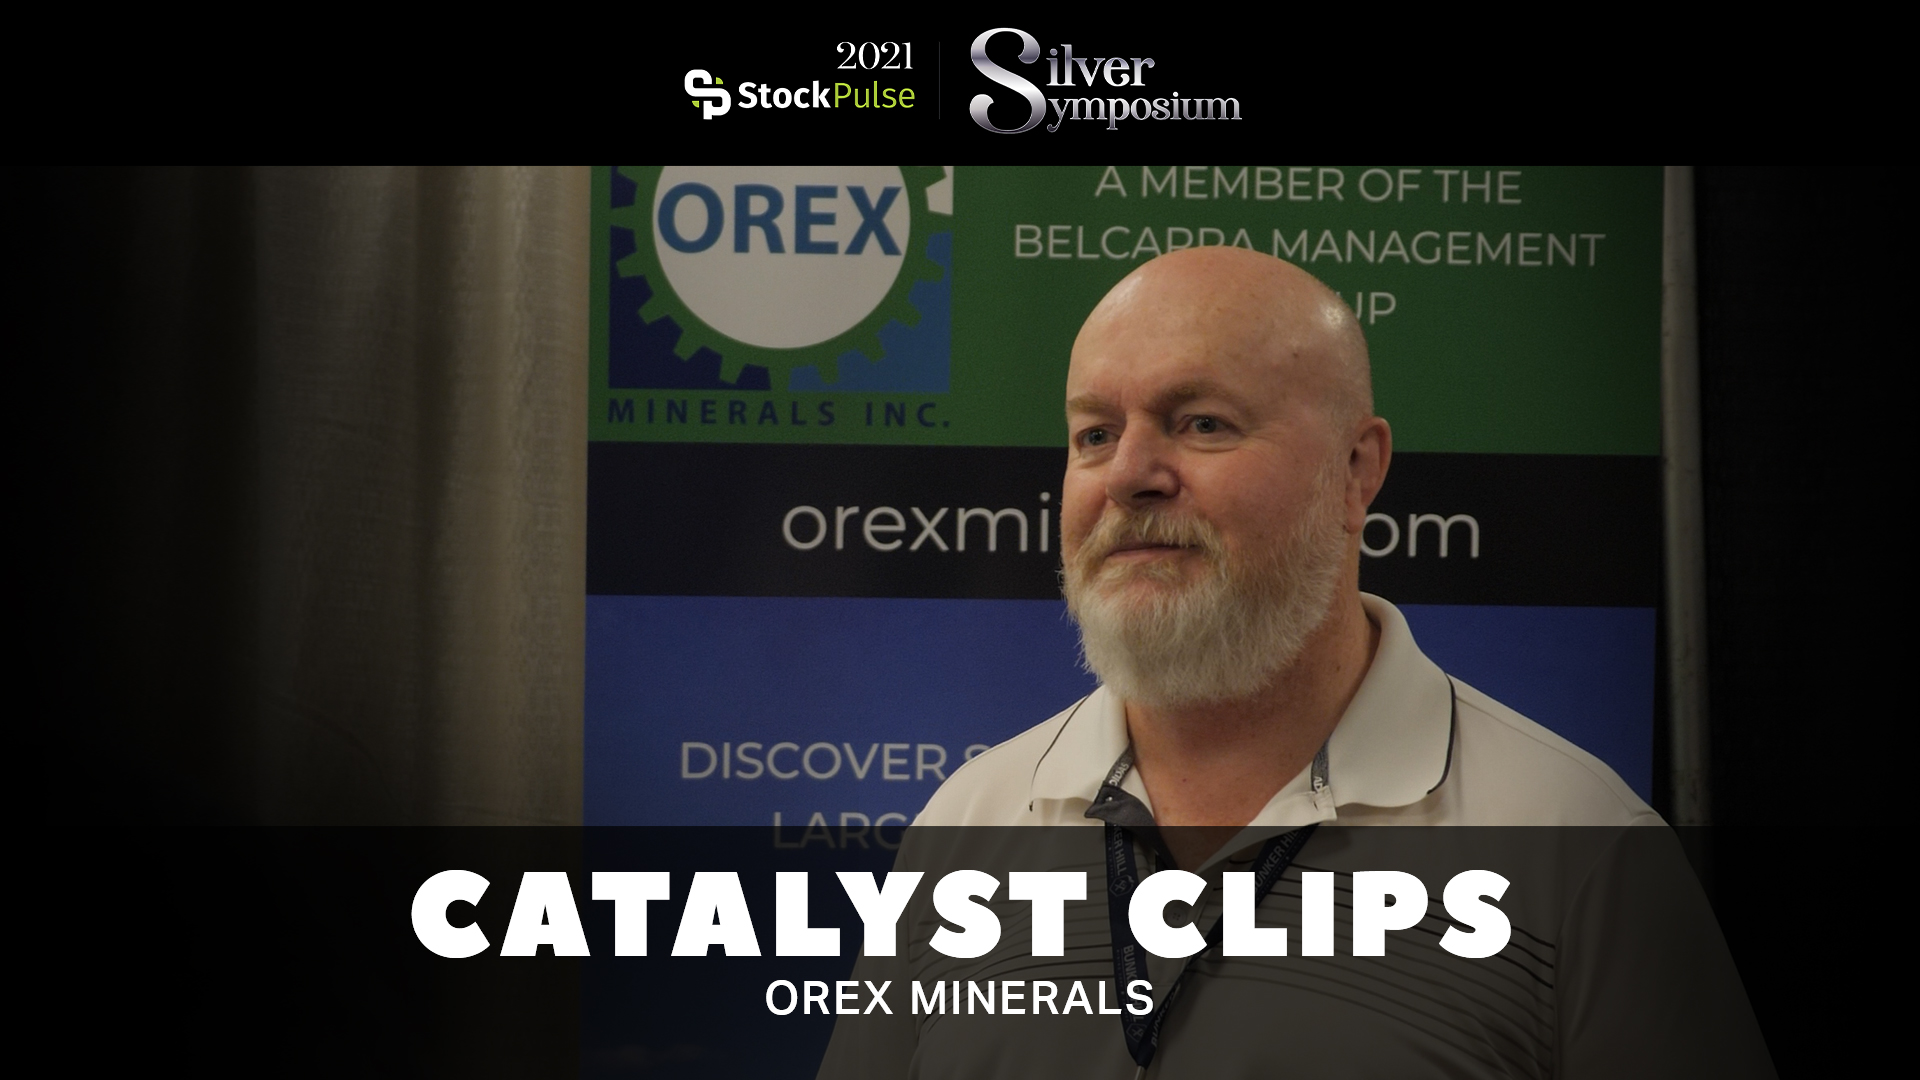 2021 StockPulse Silver Symposium Catalyst Clips | Ben Whiting of Orex Minerals